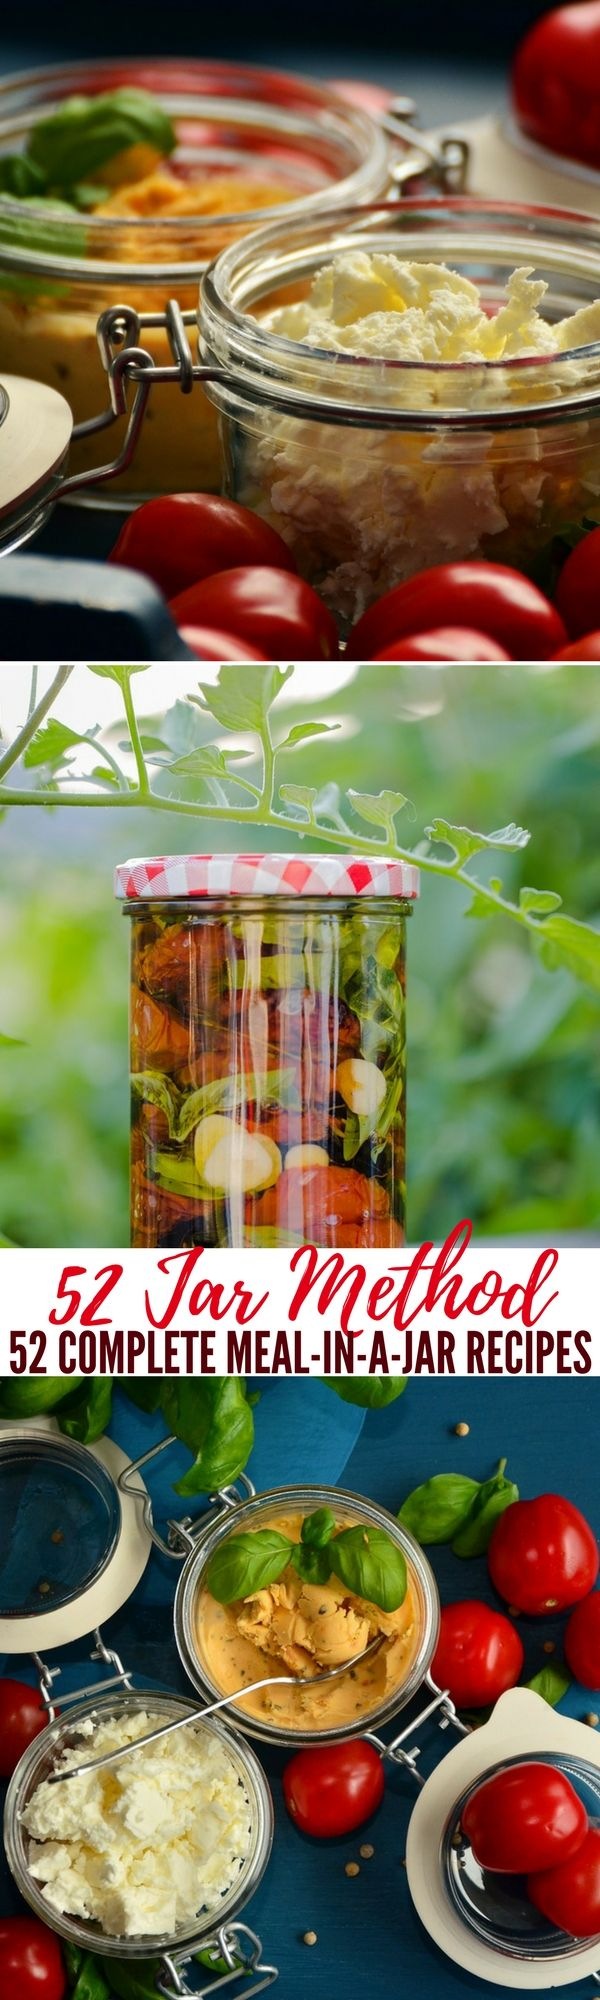 52 Jar Method - 52 Complete Meal-in-a-Jar Recipes — Creating food stores while prepping and homesteading sure does require some creativity, and luckily there are several different ways to preserve food.